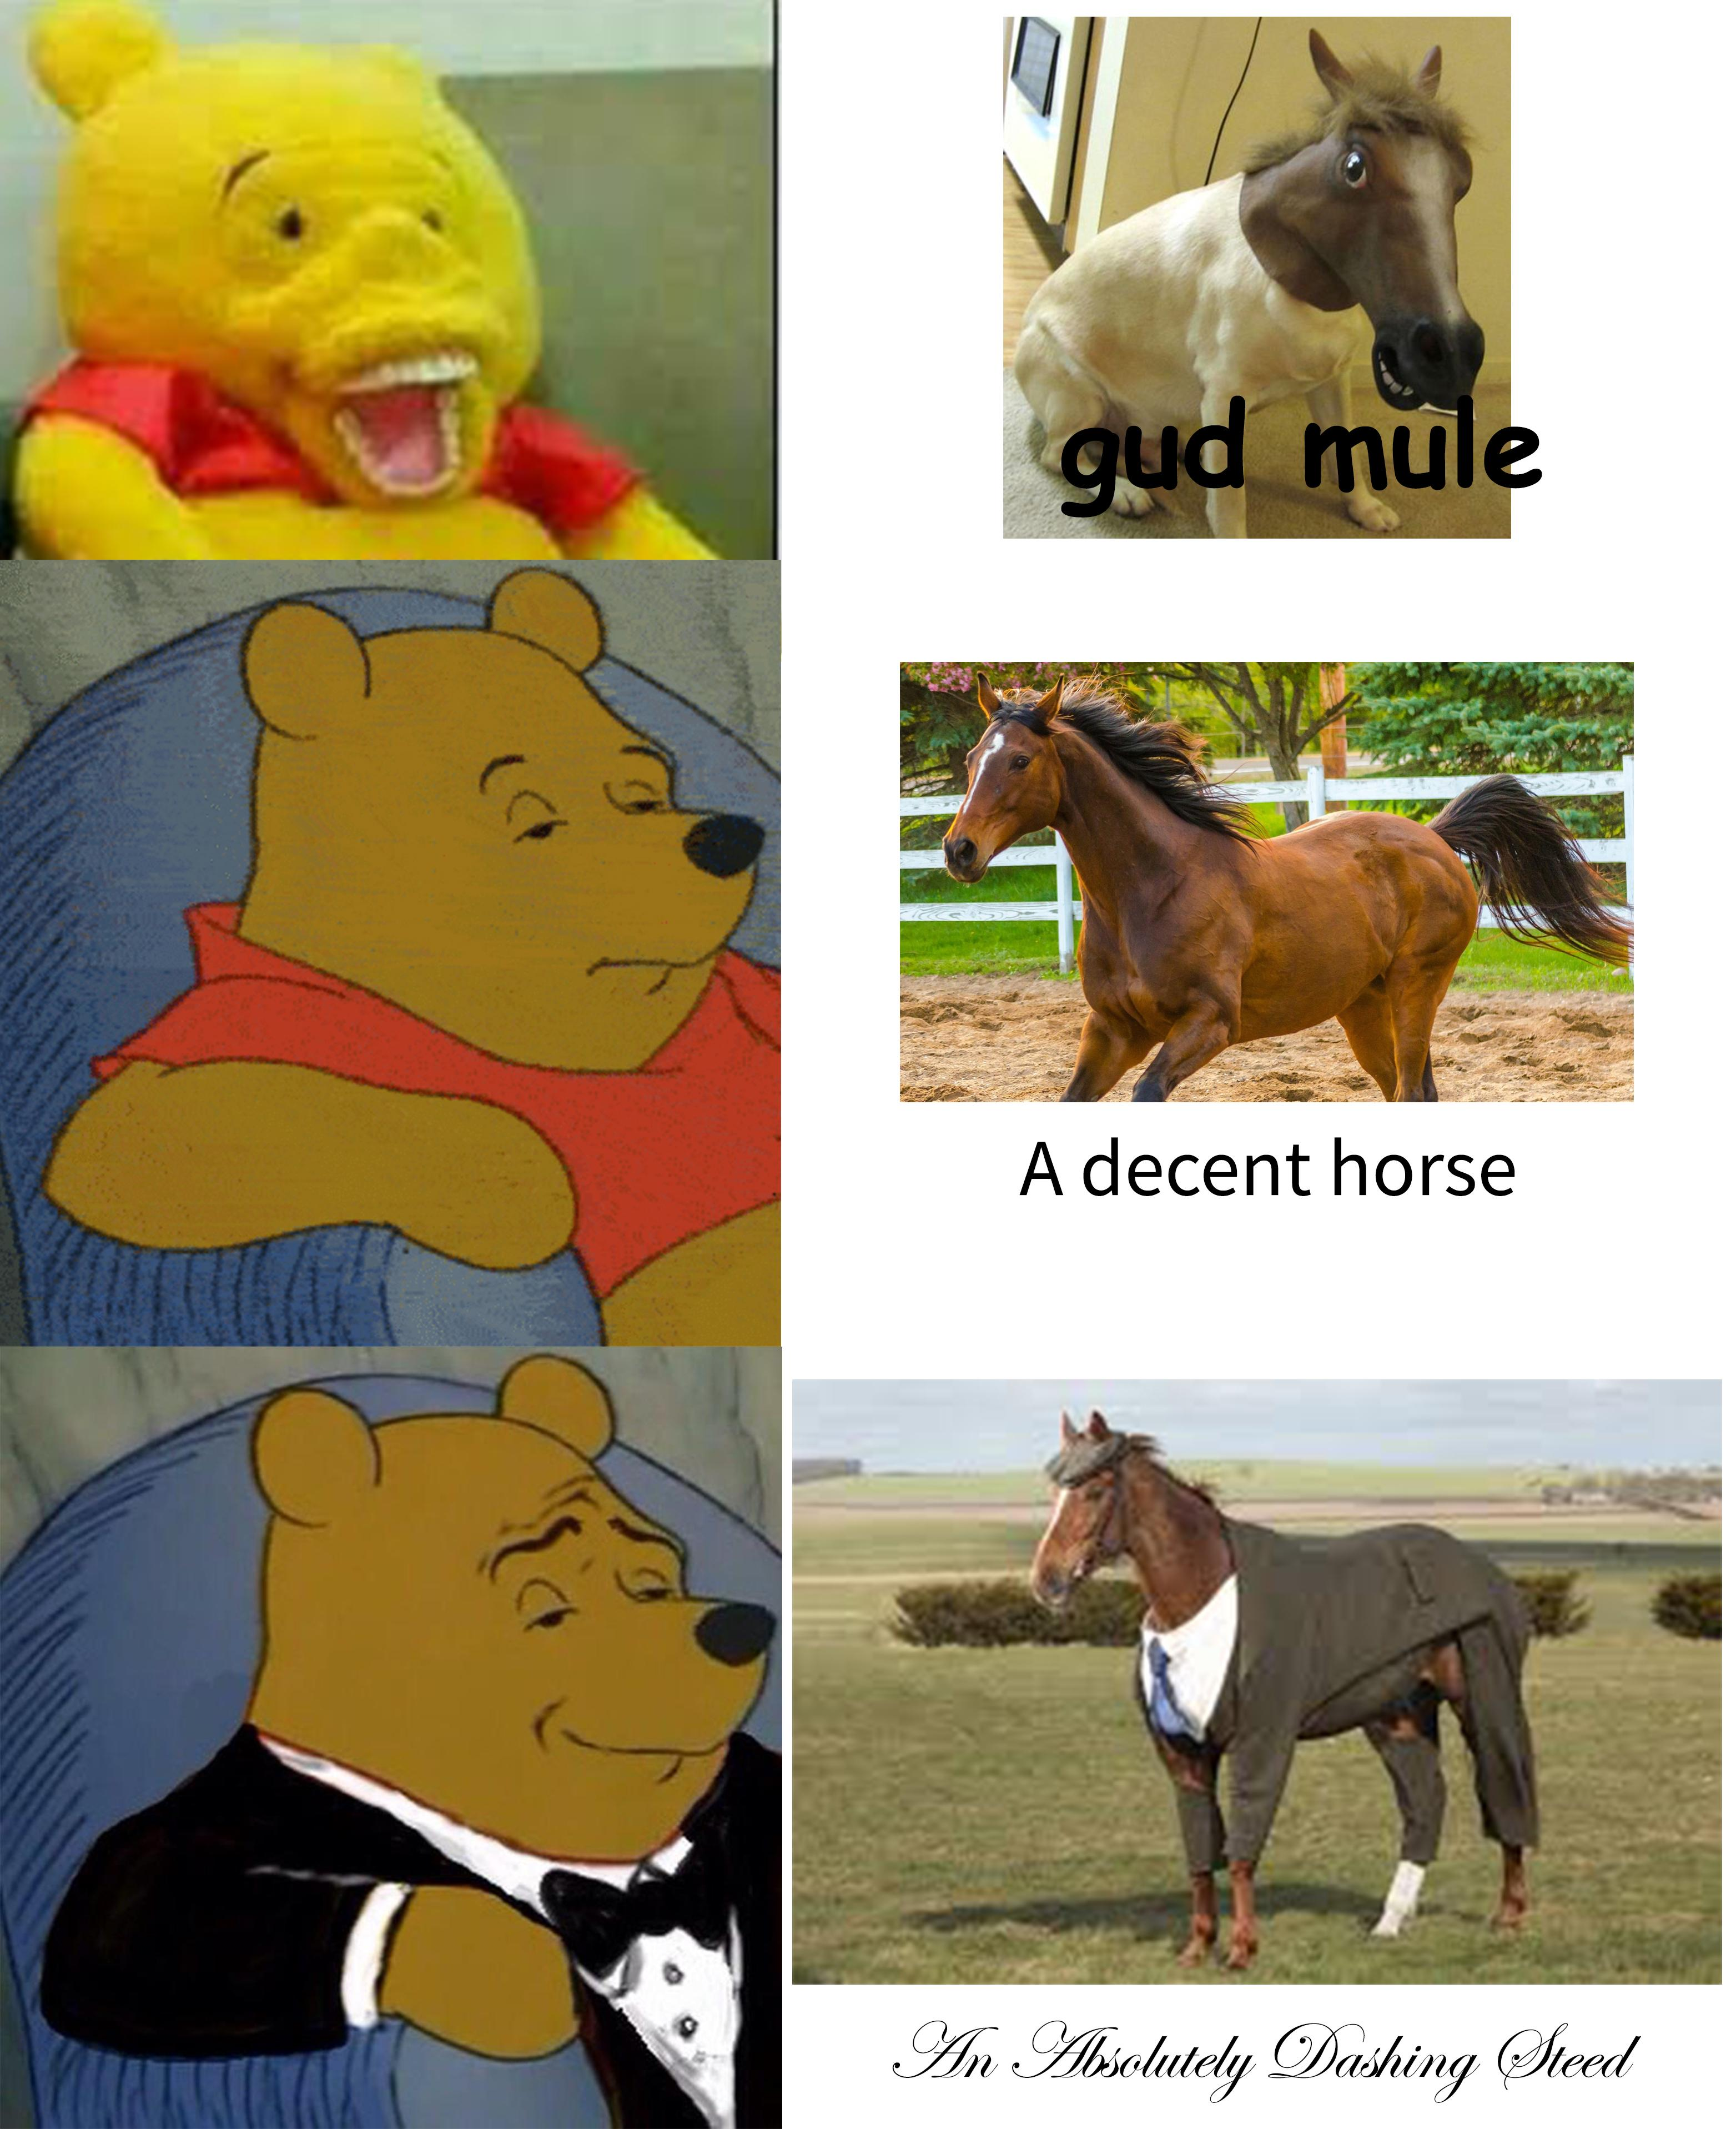 Funny Tuxedo Winnie Pooh meme with mules and captions